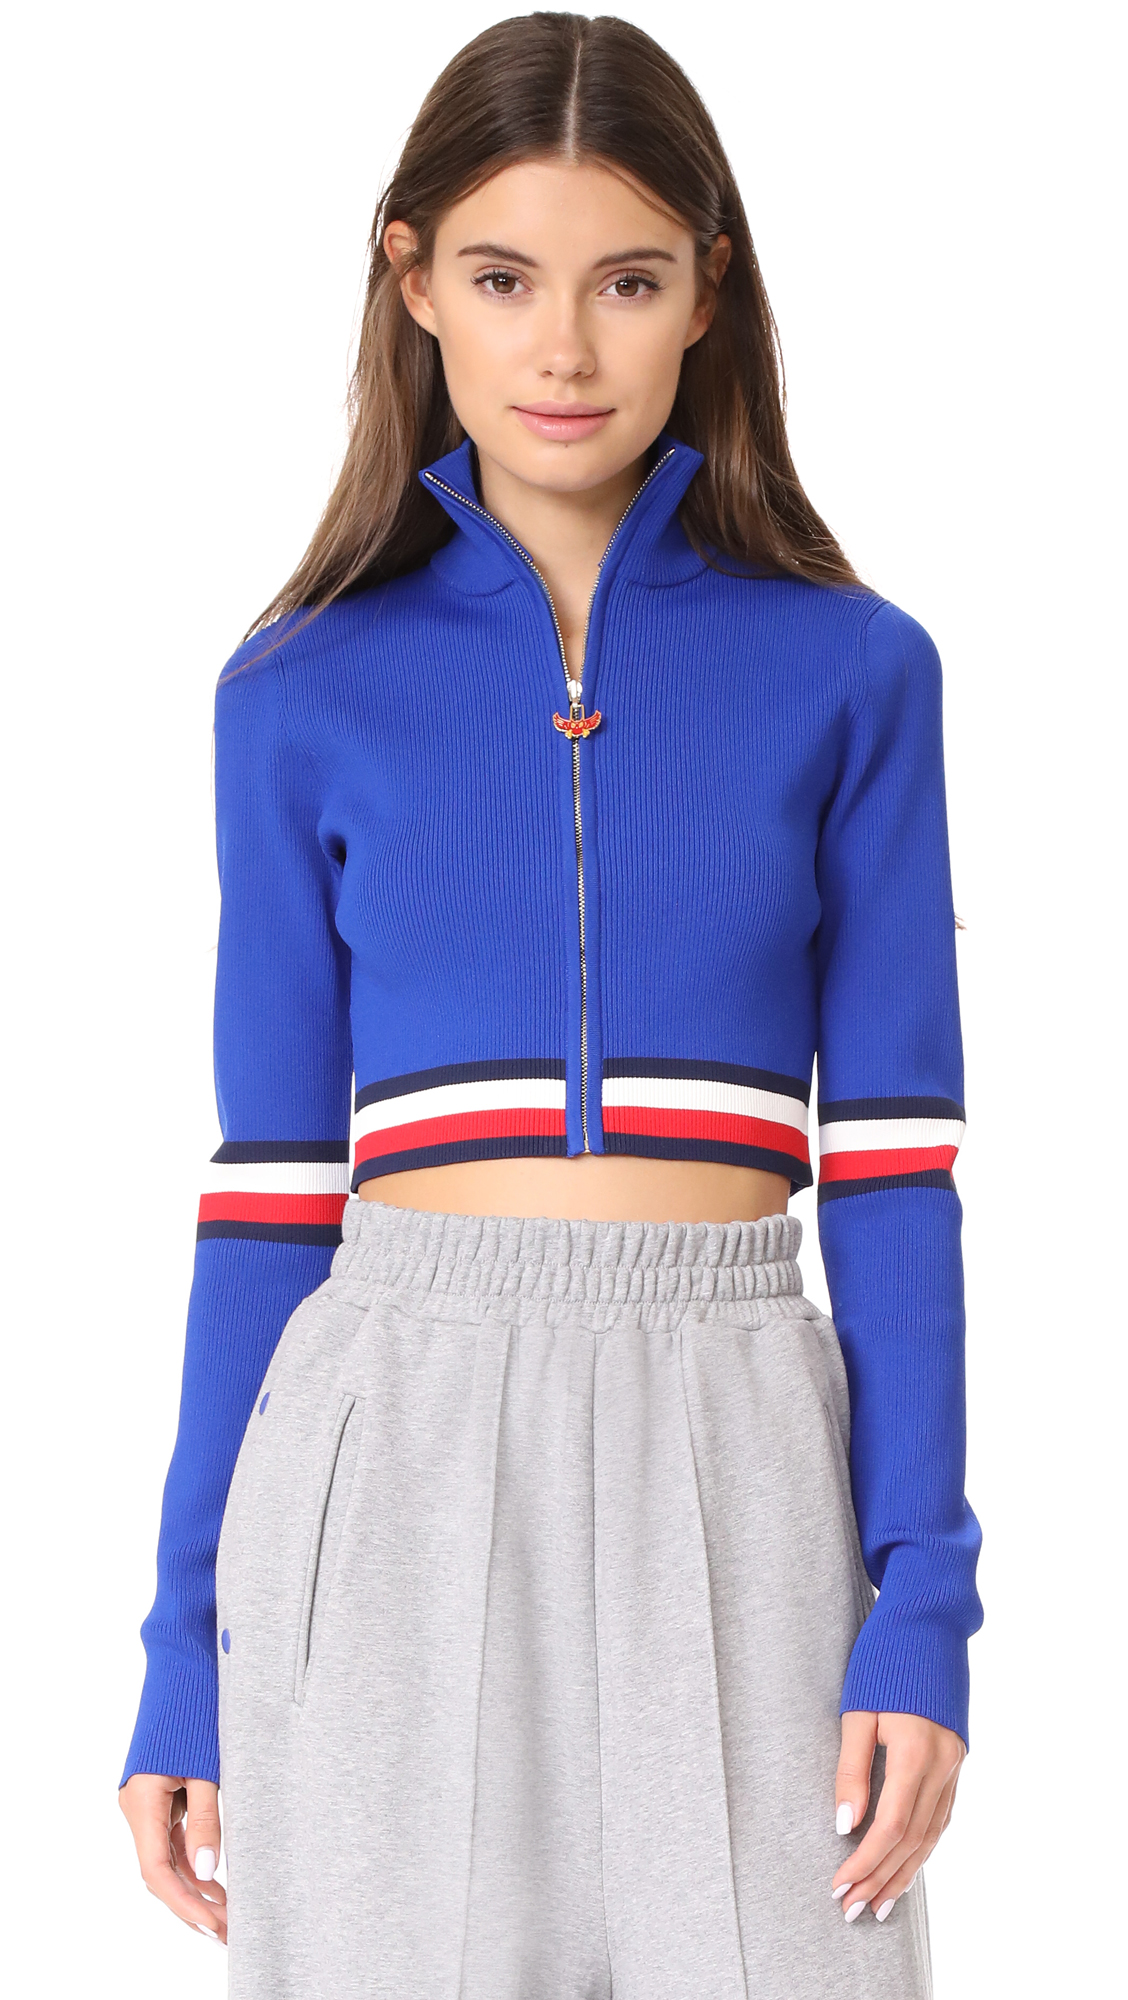 Hilfiger Collection Corporate High Neck Sweater - Surf